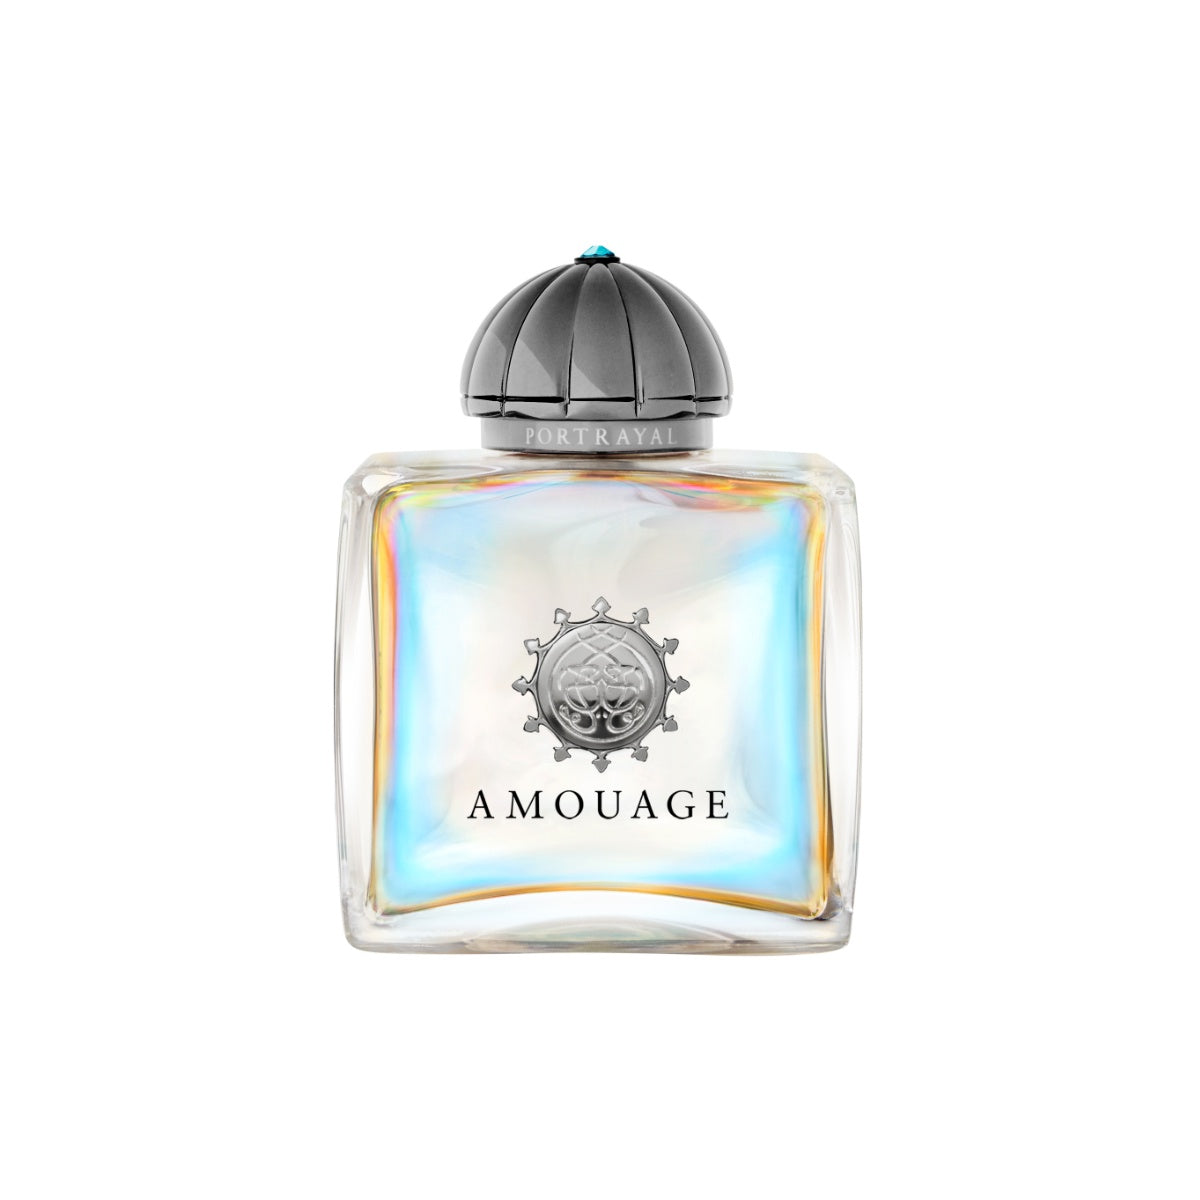 AMOUAGE Portrayal 100ML